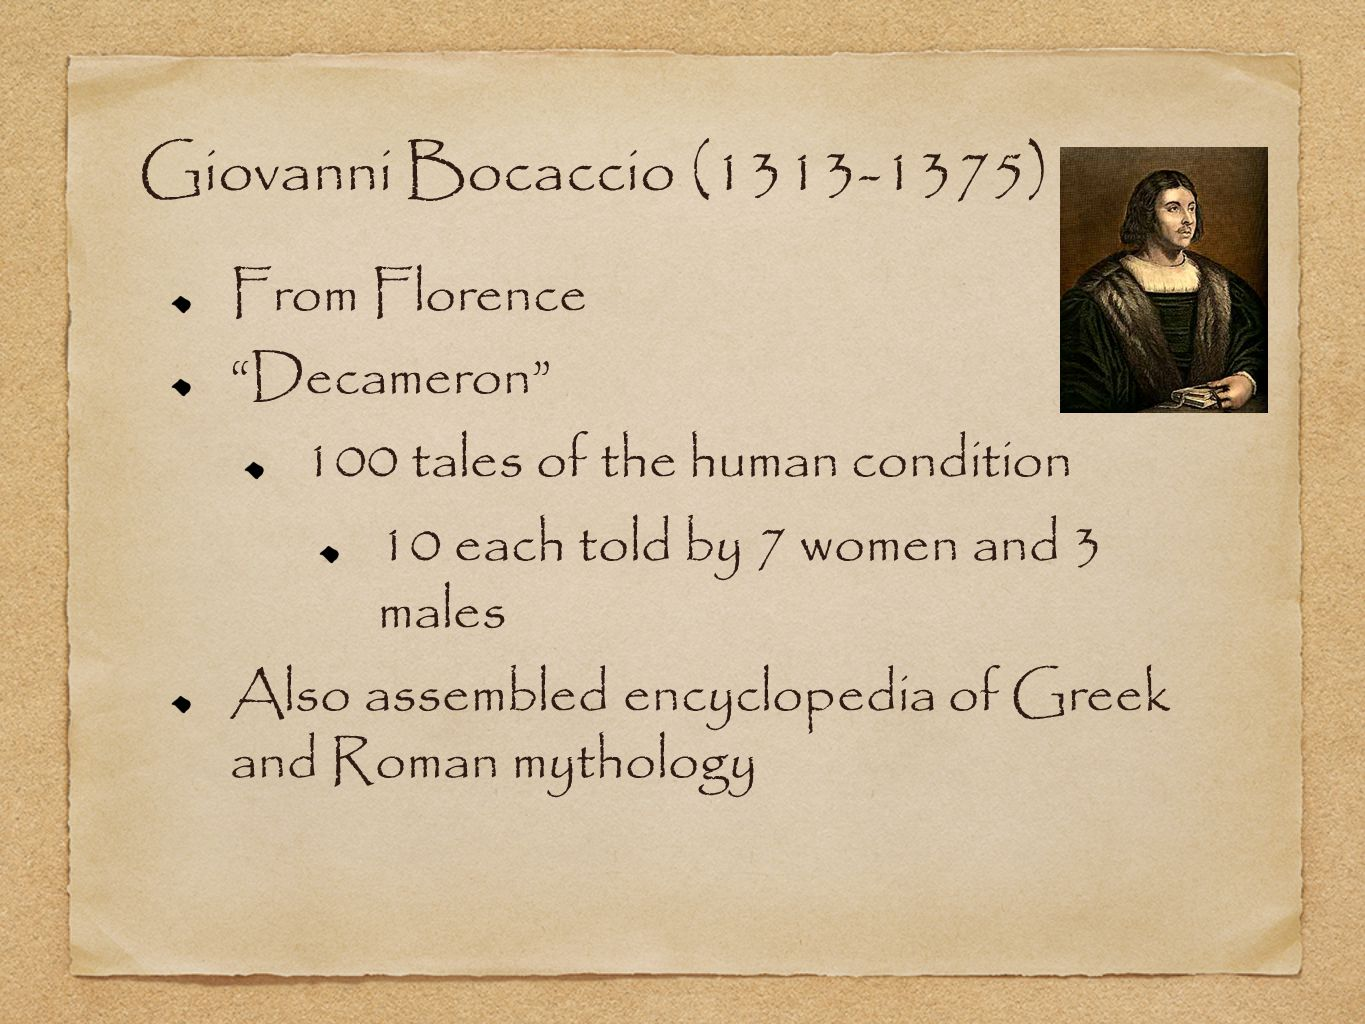 Giovanni Bocaccio (1313-1375) From Florence Decameron 100 tales of the human condition 10 each told by 7 women and 3 males Also assembled encyclopedia of Greek and Roman mythology